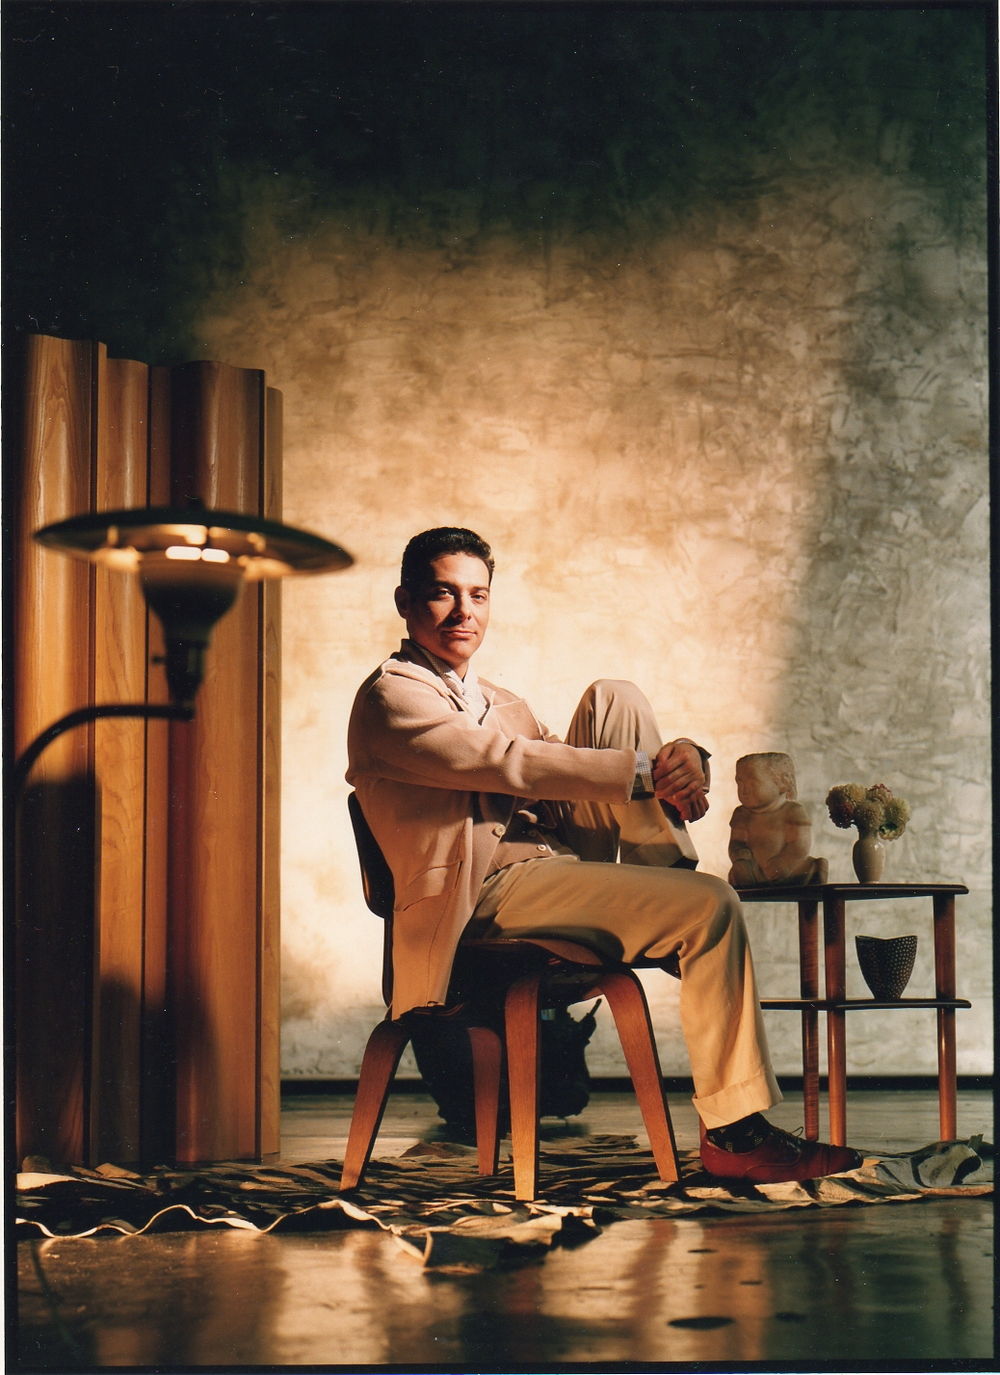 Michael Feinstein Atlantic Records Photo, Nick Cardillicchio